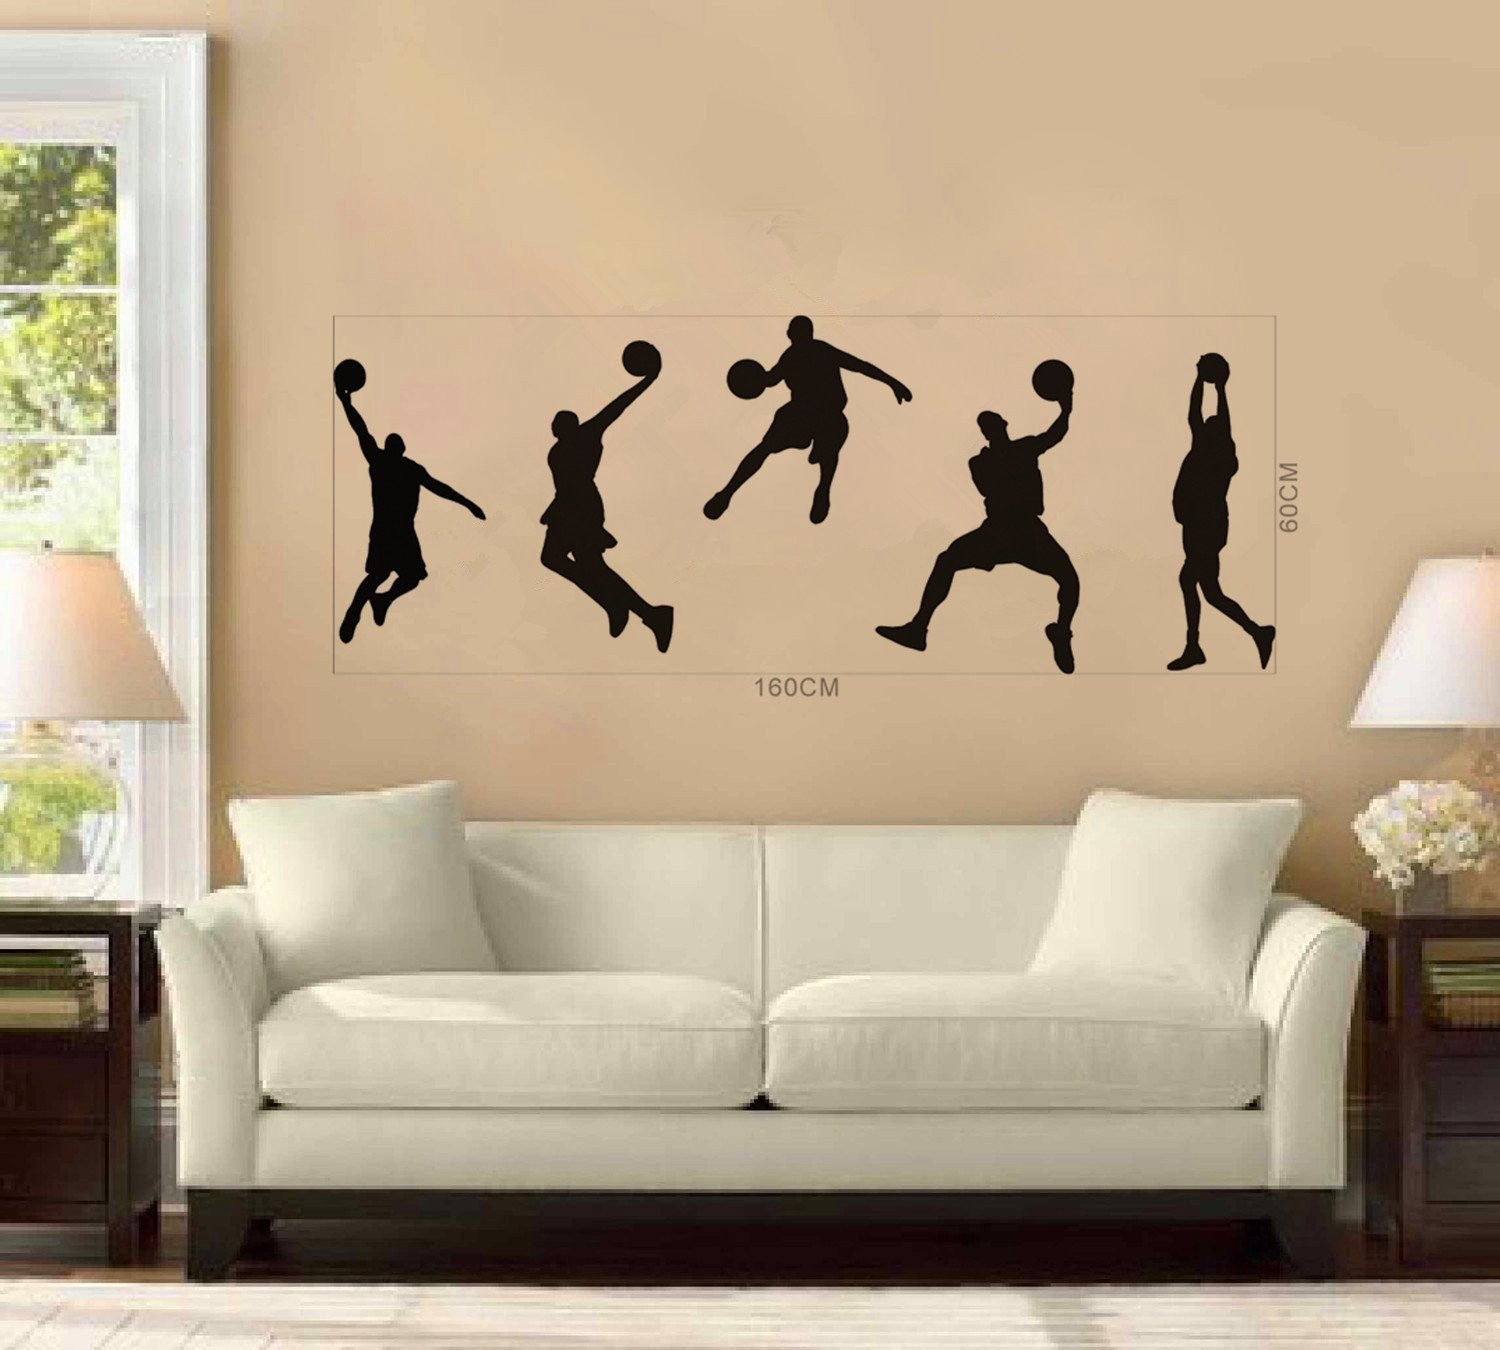 Amazon olivia diy basketball players boys kids nba games amazon olivia diy basketball players boys kids nba games black vinyl removable wall stickers home decals sport silhouette graphic pattern quote art amipublicfo Image collections